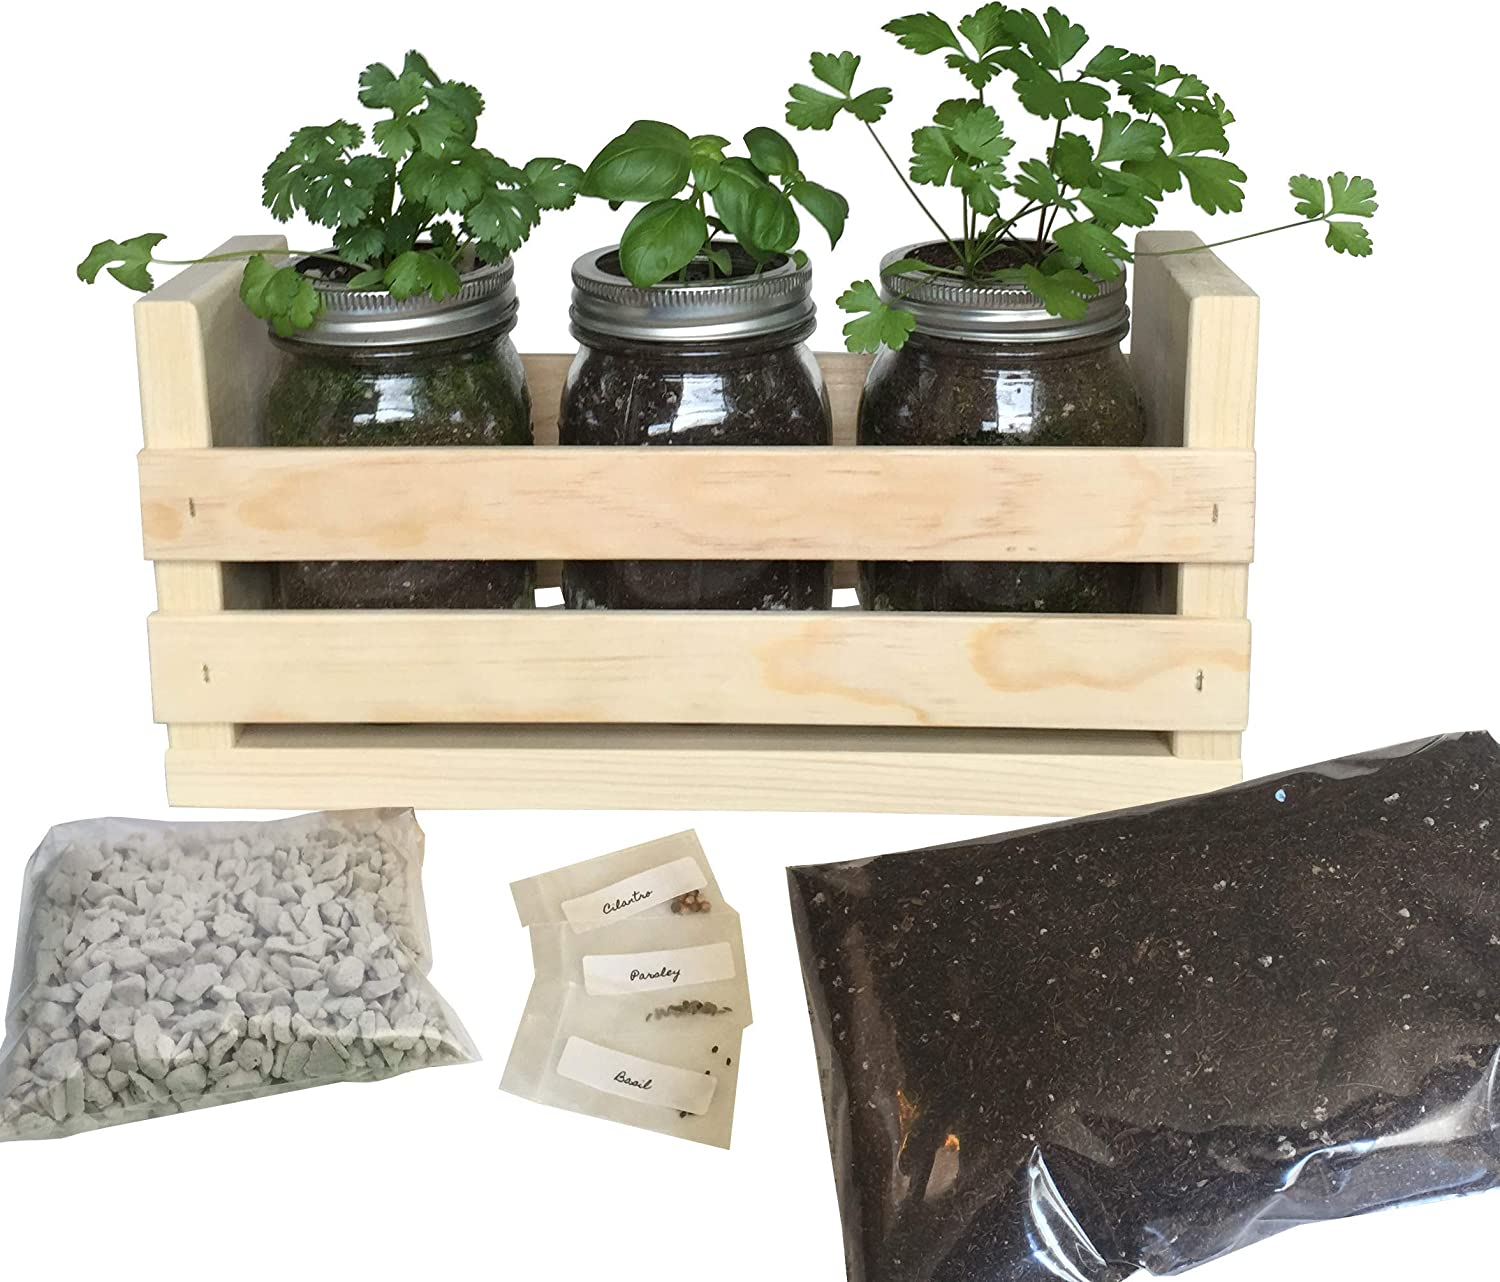 Indoor Herb Garden Kit -Great for Growing an Indoor Herb Garden, Includes Everything You Need to Grow a Herb Garden (Cilantro,Basil,Parsley) in a Simple Container